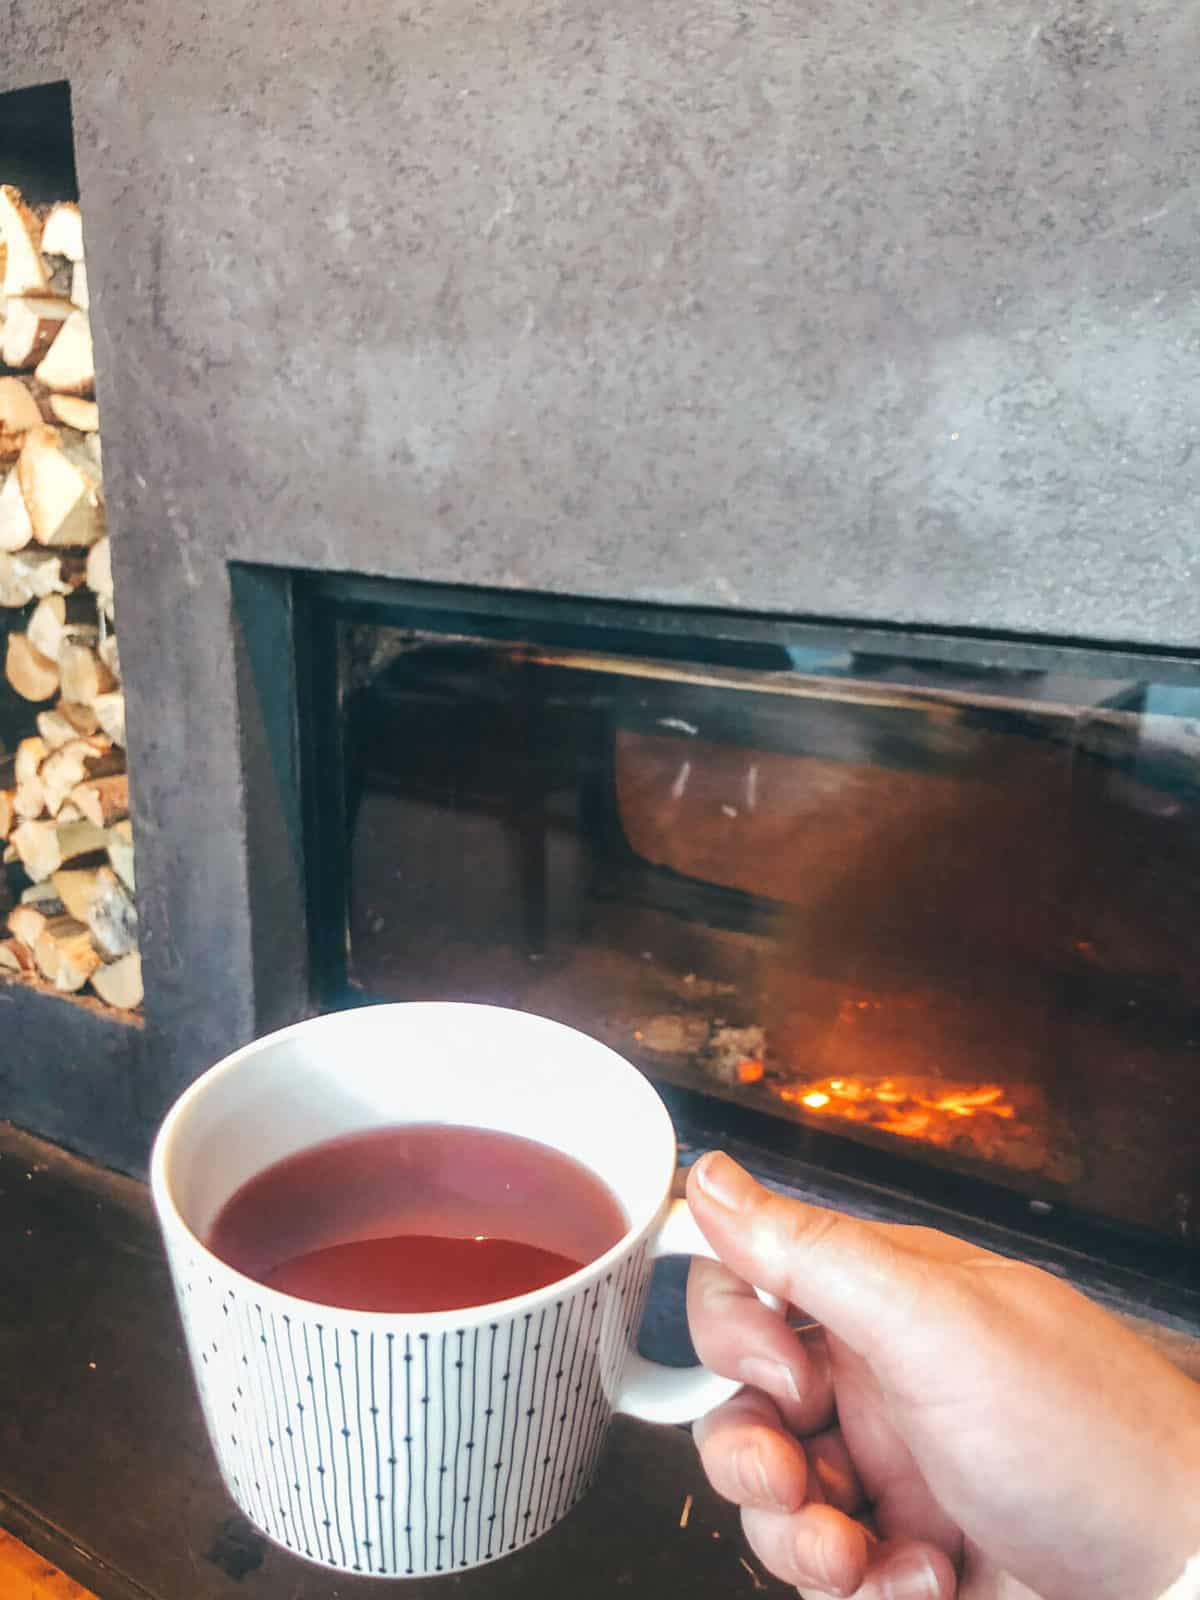 A hand holding a white mug with a red drink in the mug in front of a fire